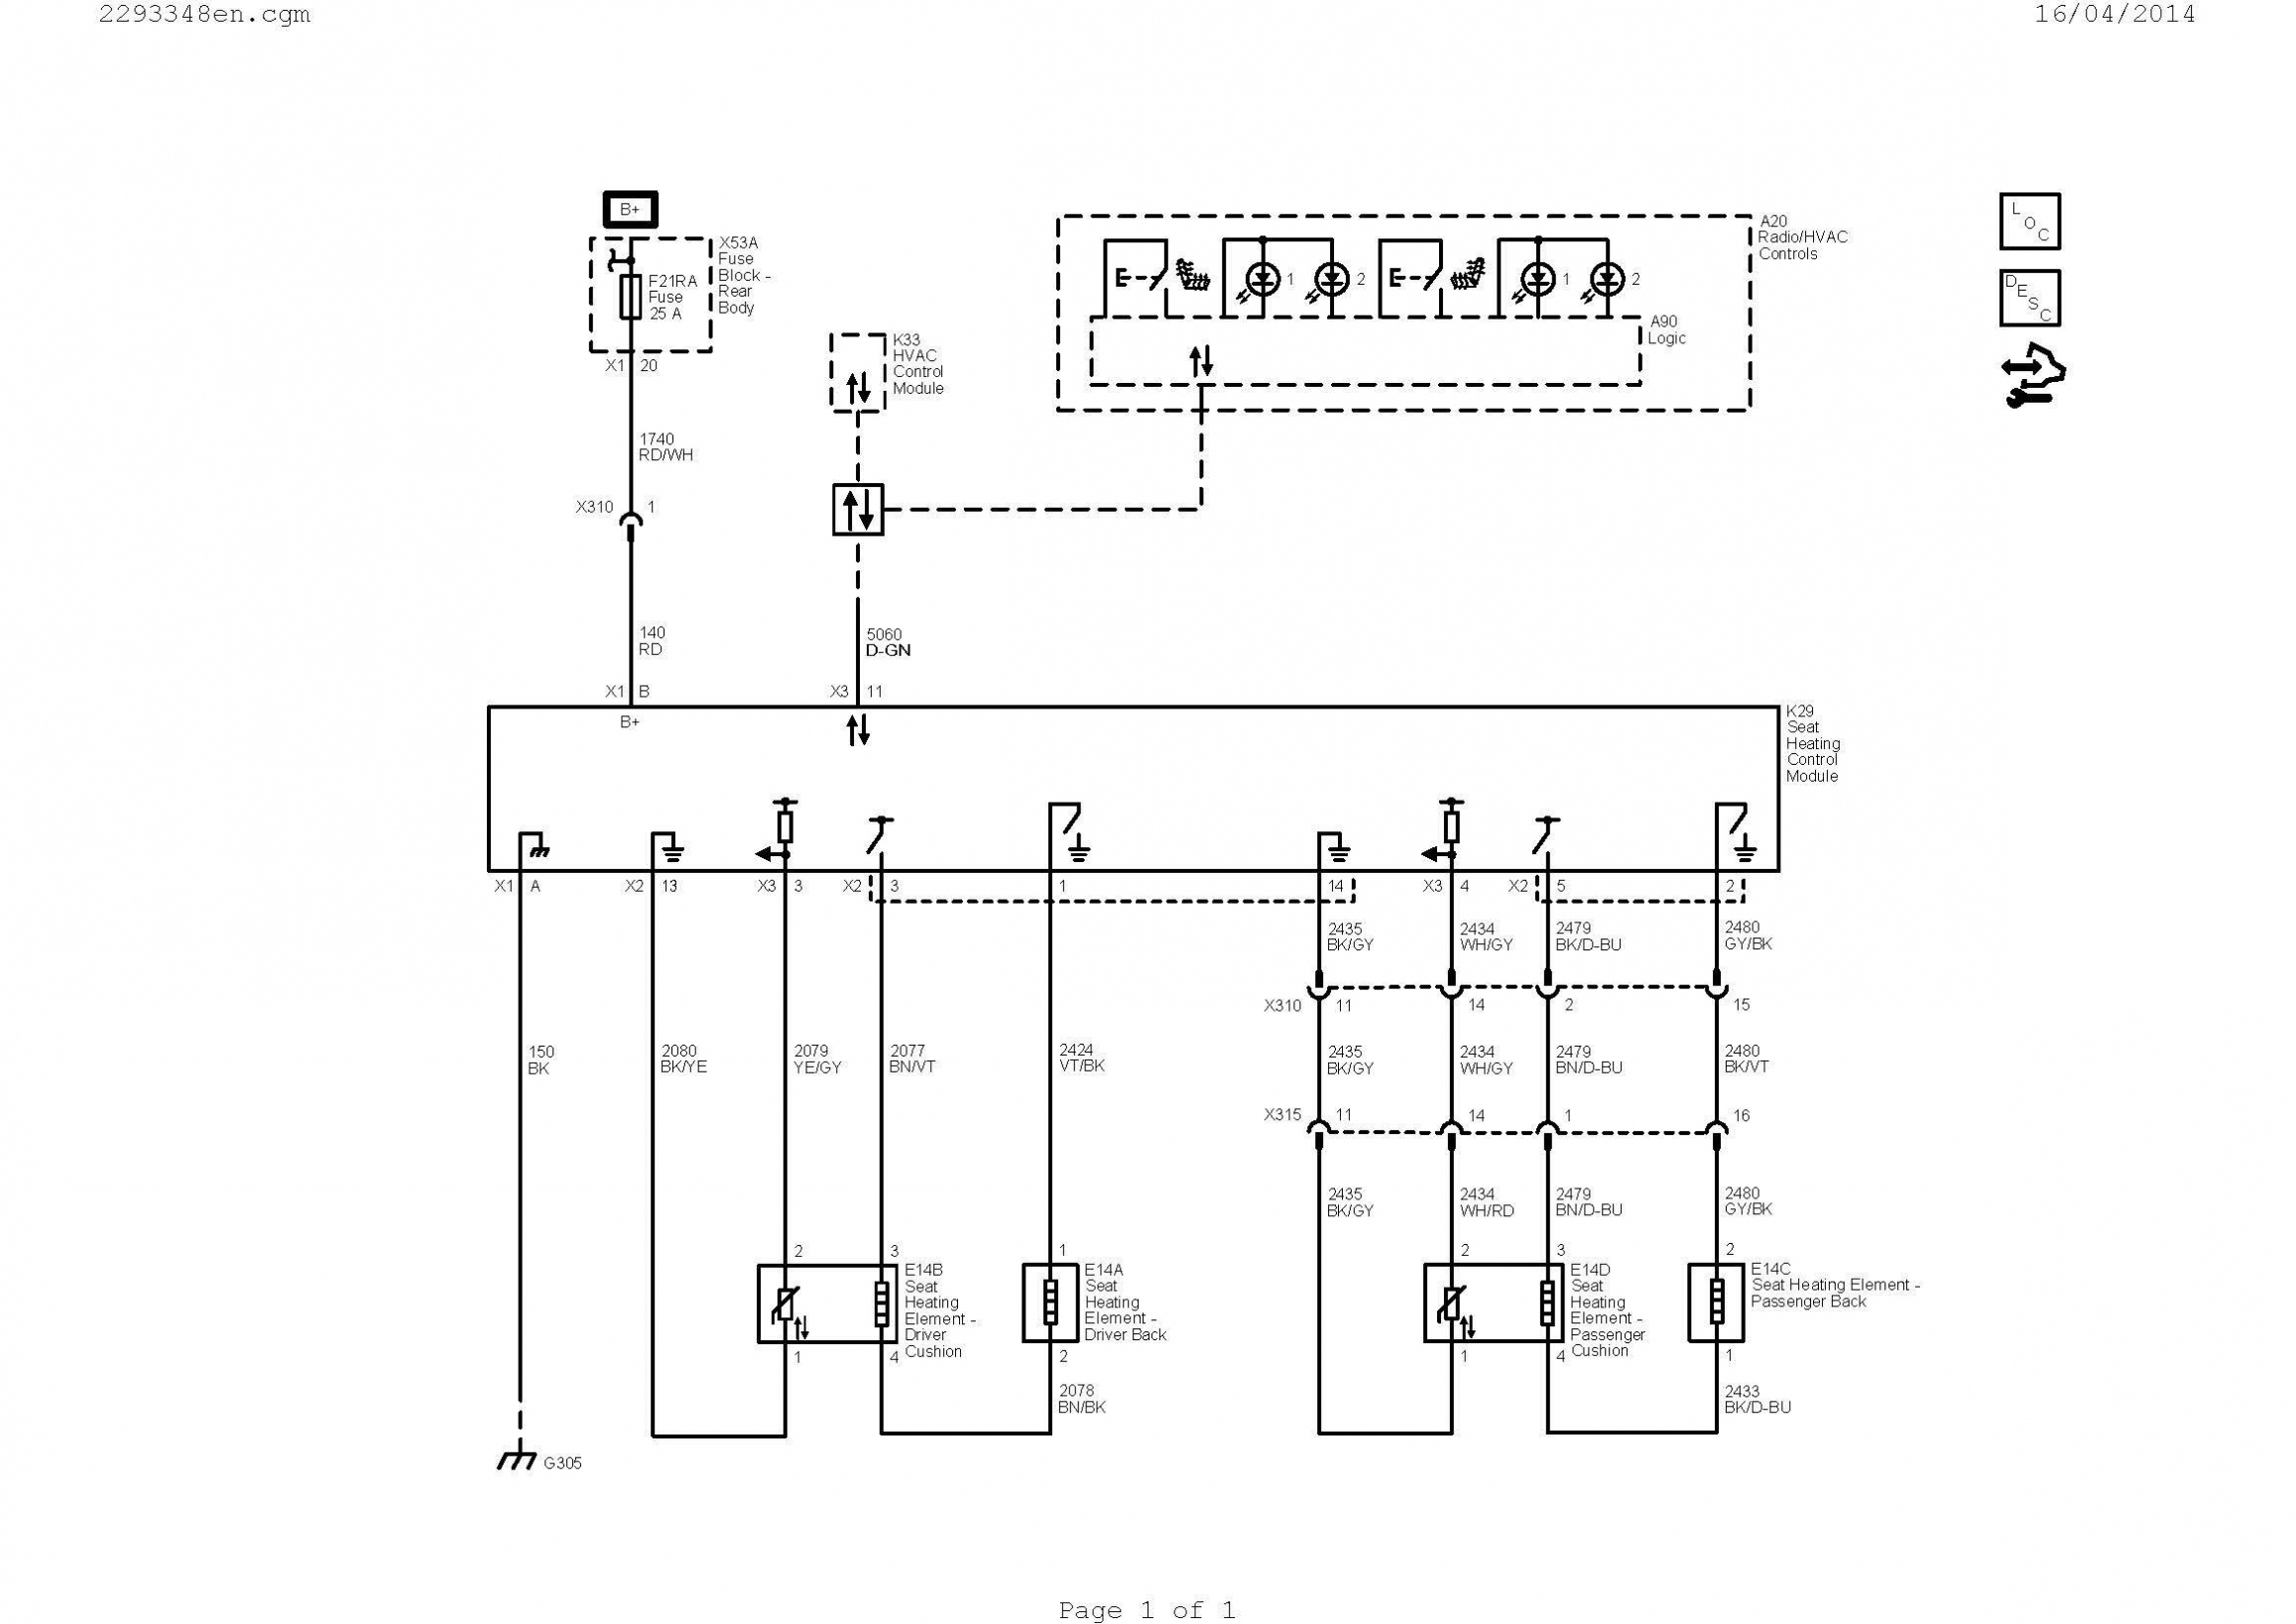 Wiring Diagram For 3 Way Toggle Switch Refrence 3 Position Ignition - 3 Position Toggle Switch Wiring Diagram